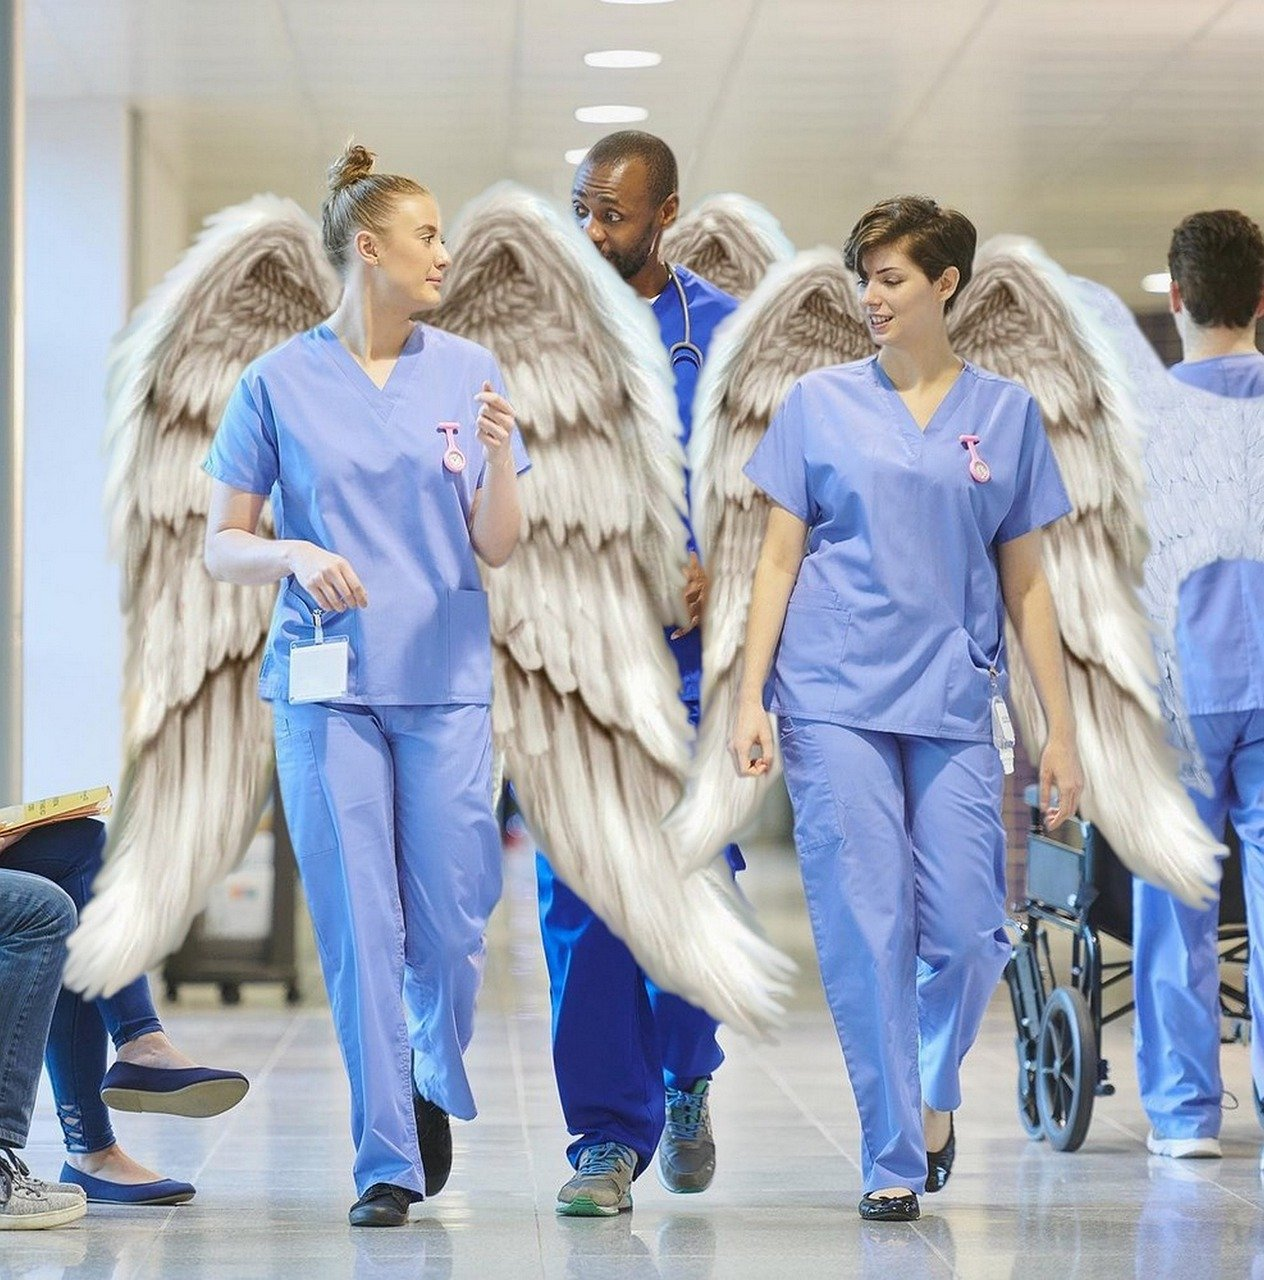 angels nurses and healthcare workers during Covid19_PD